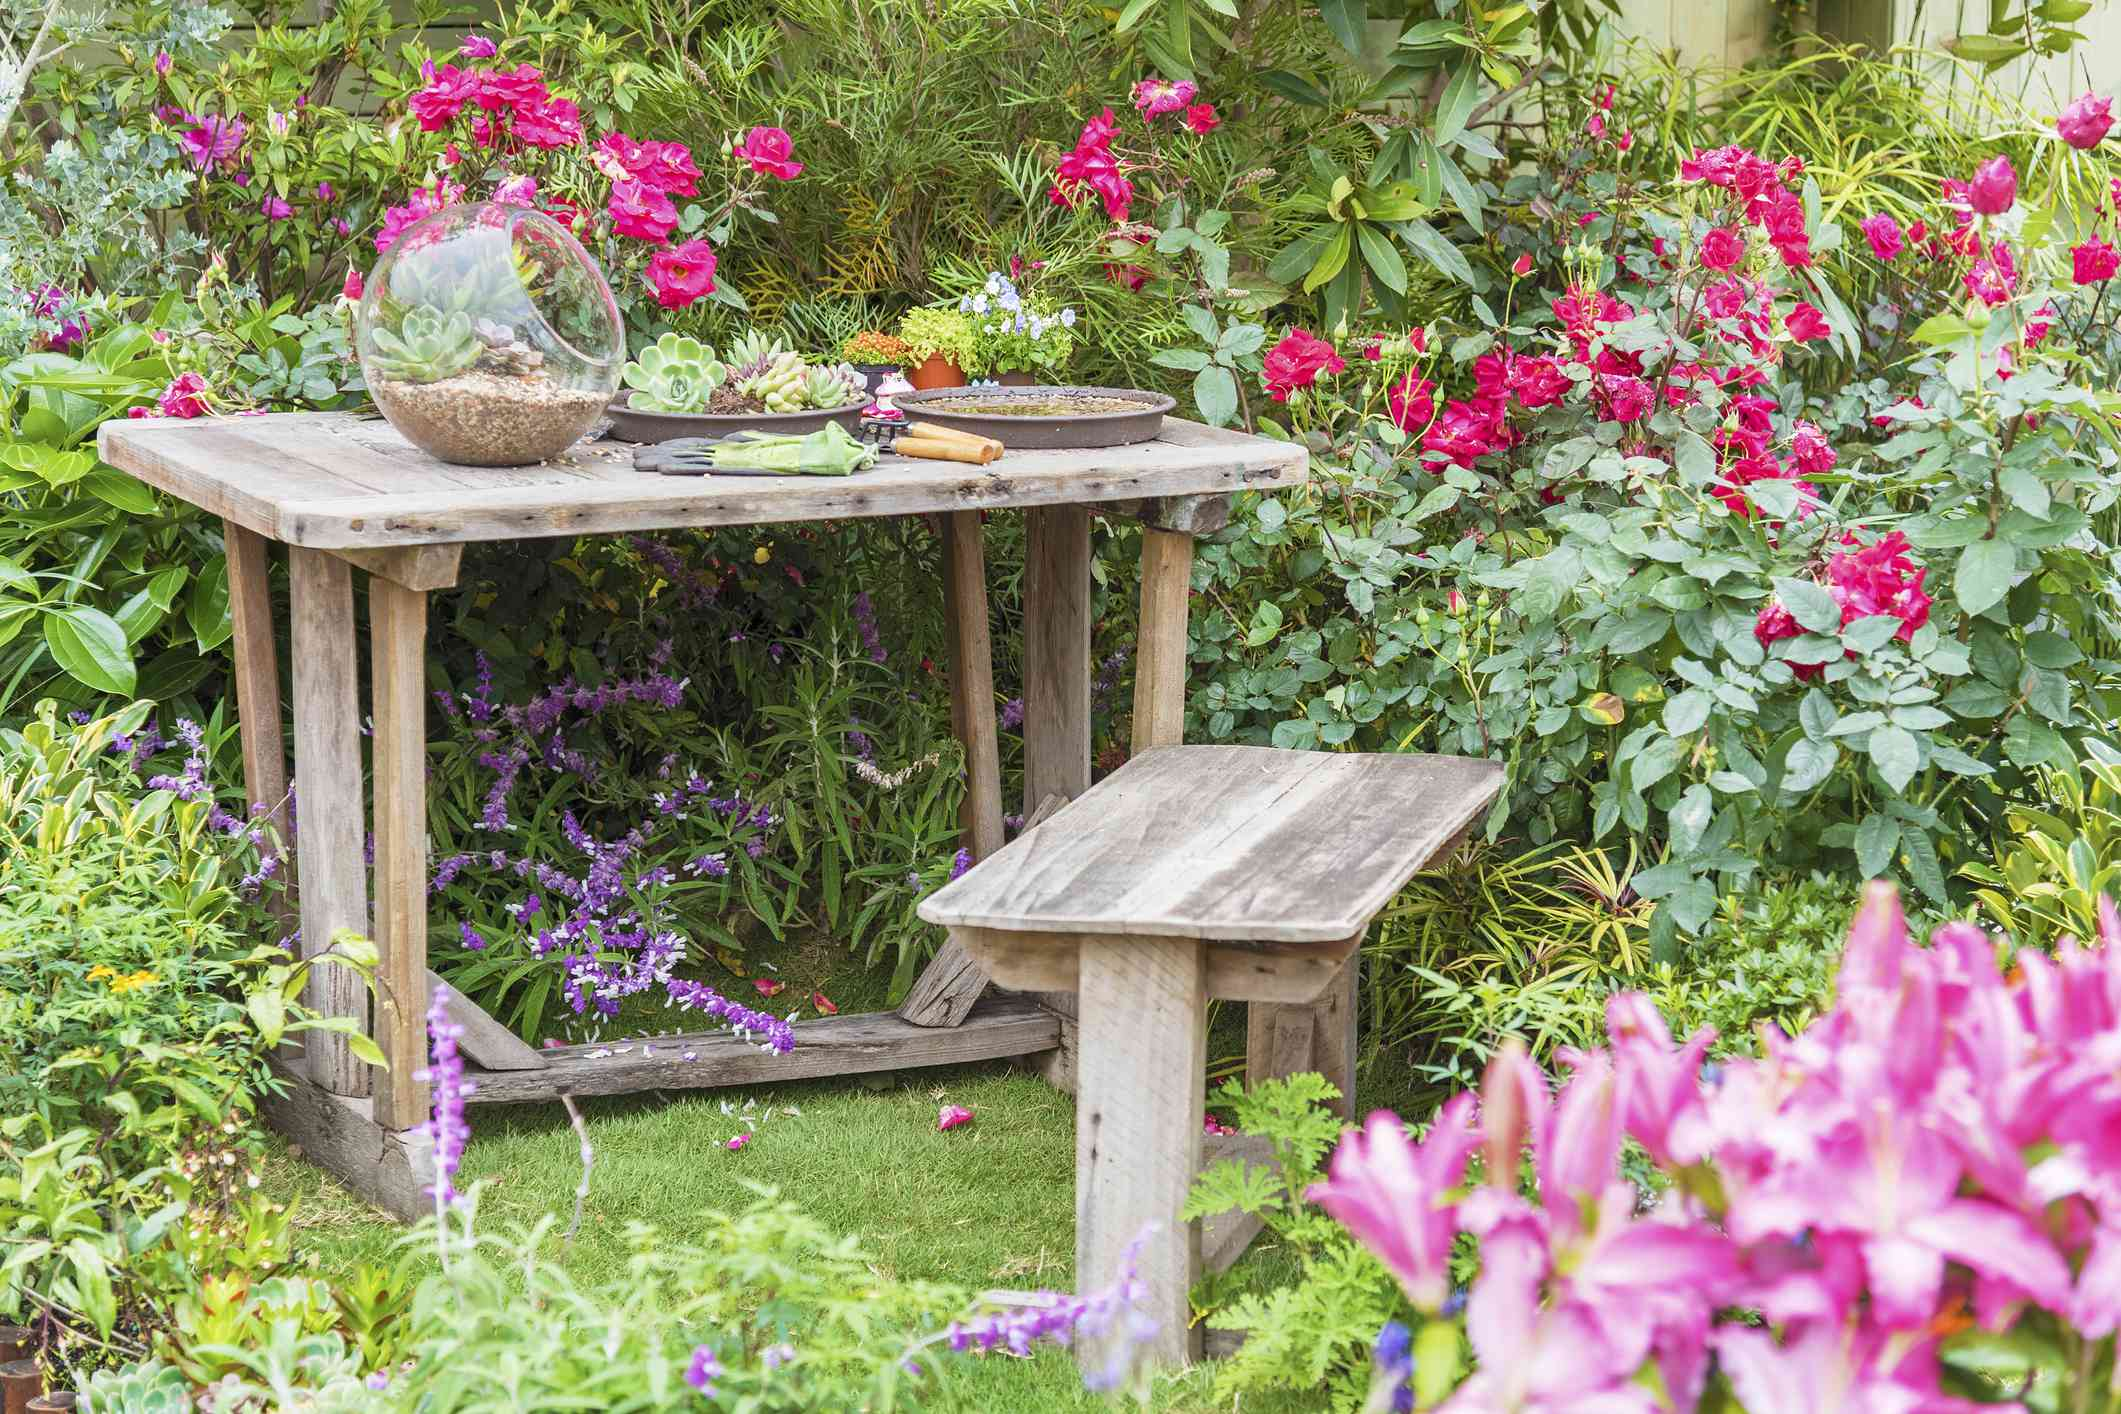 A wooden bench next to a potting table.